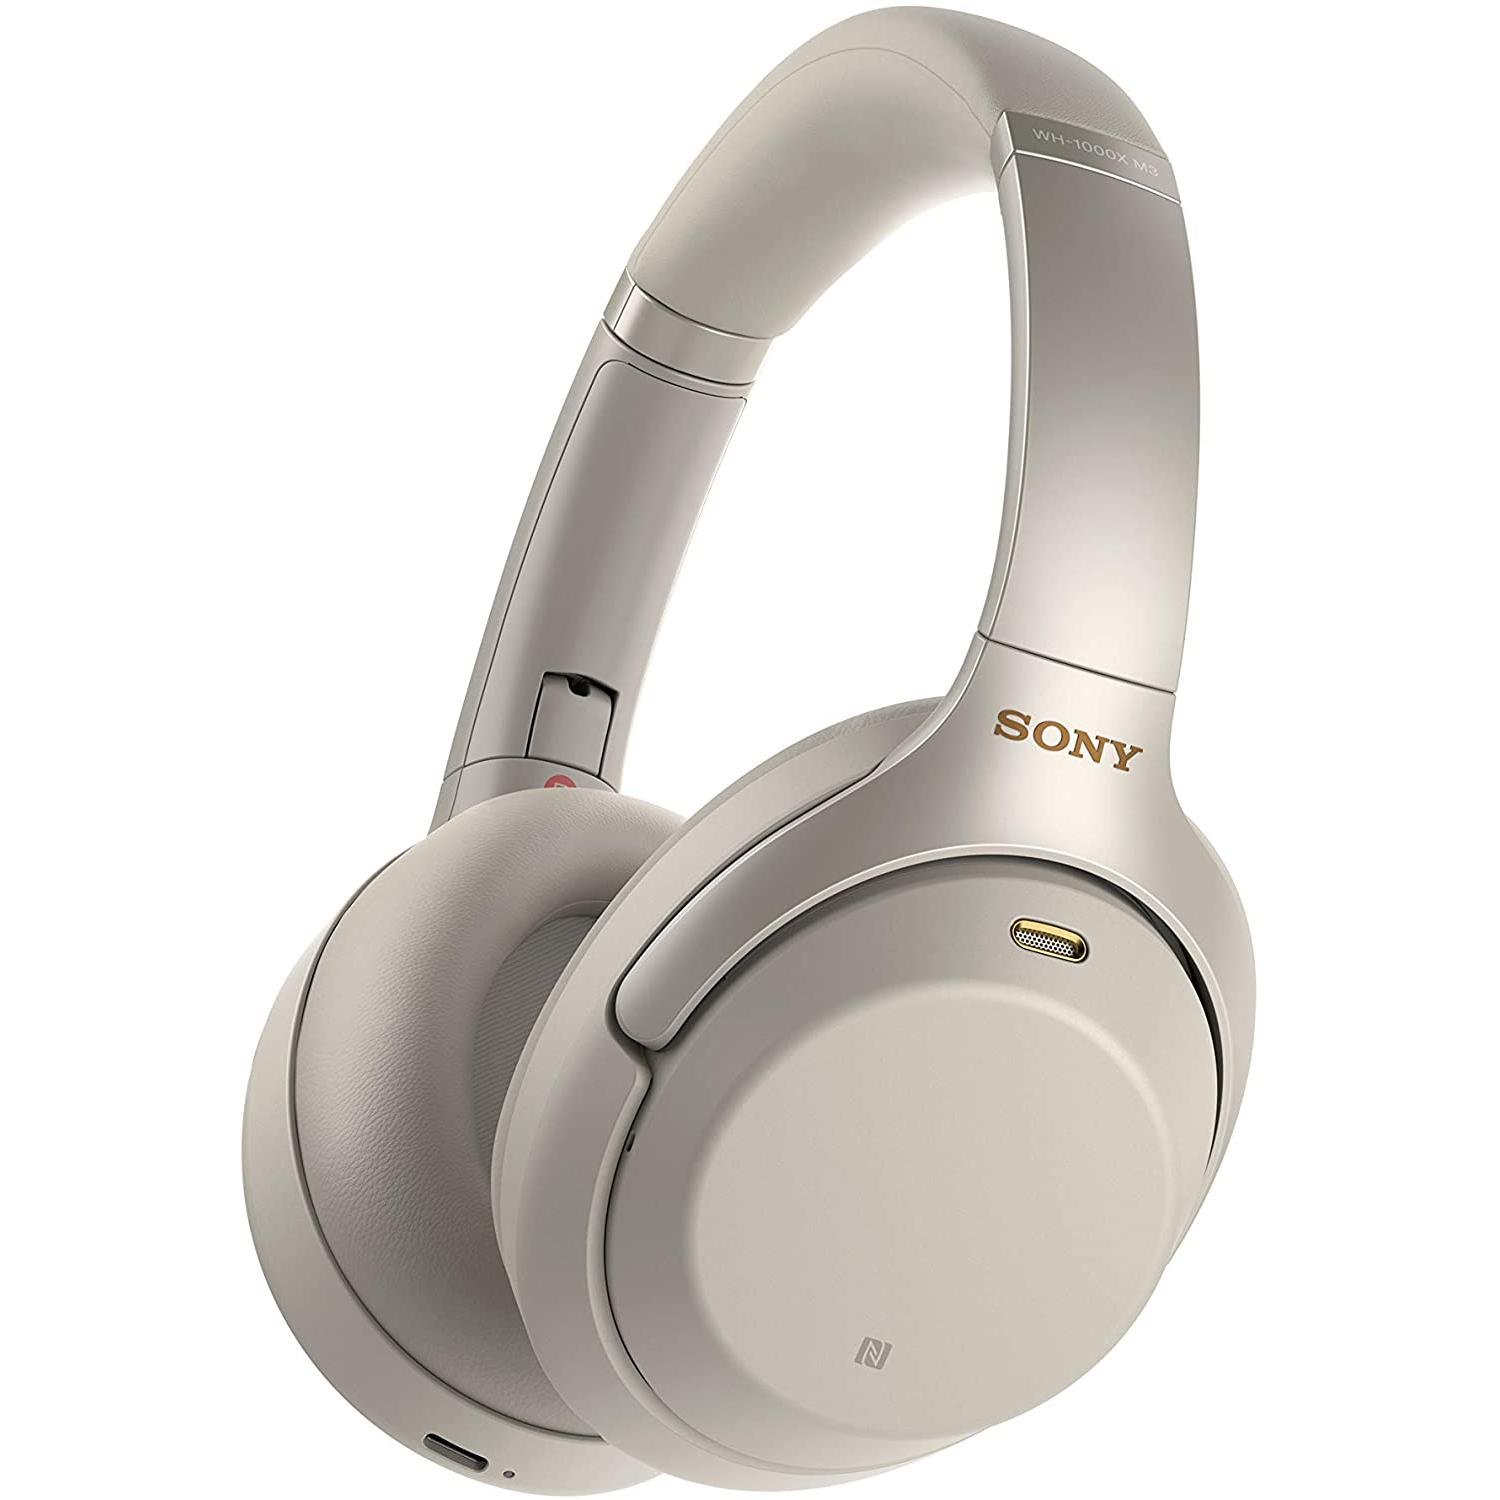 Sony WH-1000X M3 Noise-Cancelling Bluetooth Headphones with microphone - Beige